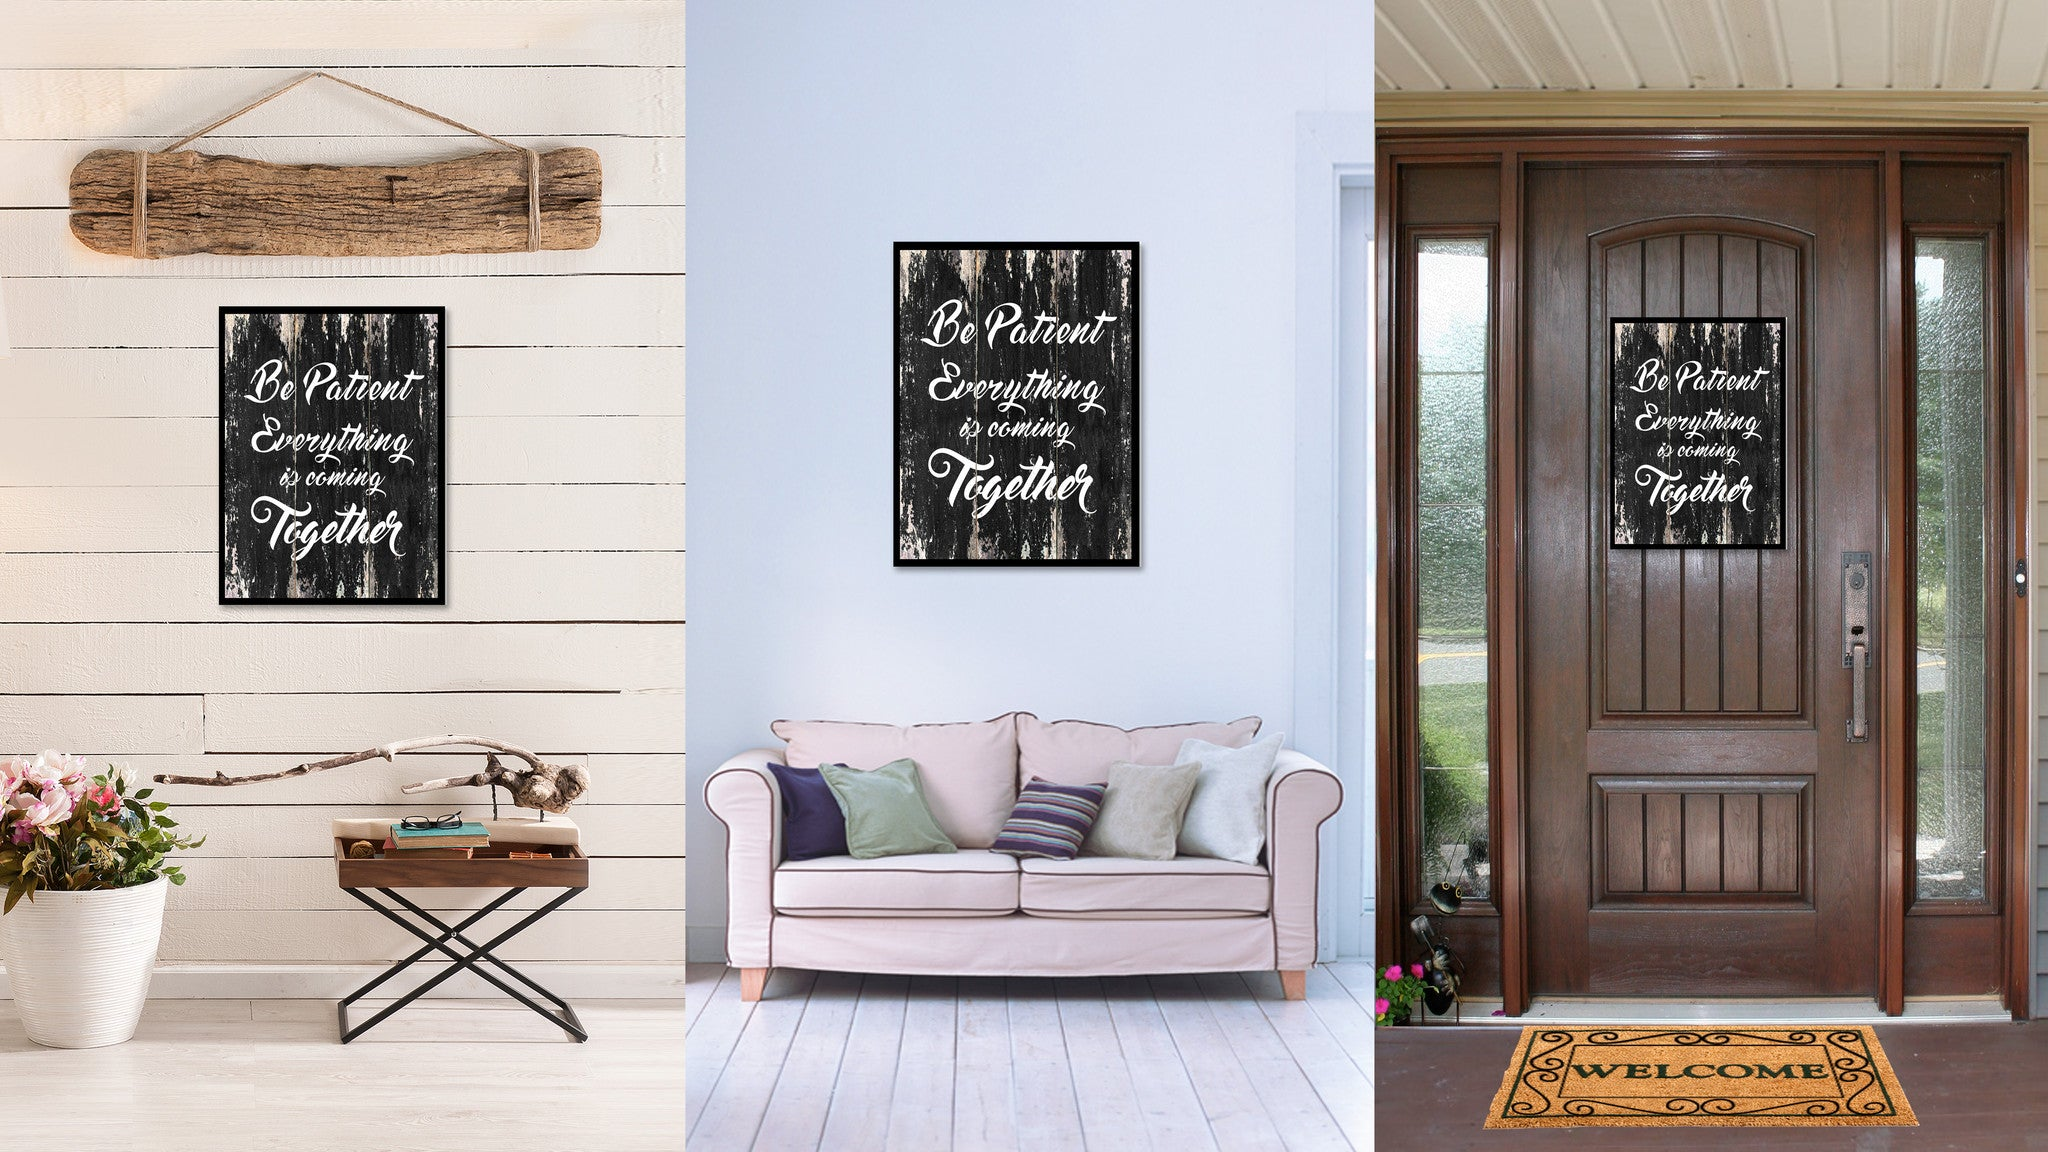 Be patient everything is coming together Motivational Quote Saying Canvas Print with Picture Frame Home Decor Wall Art